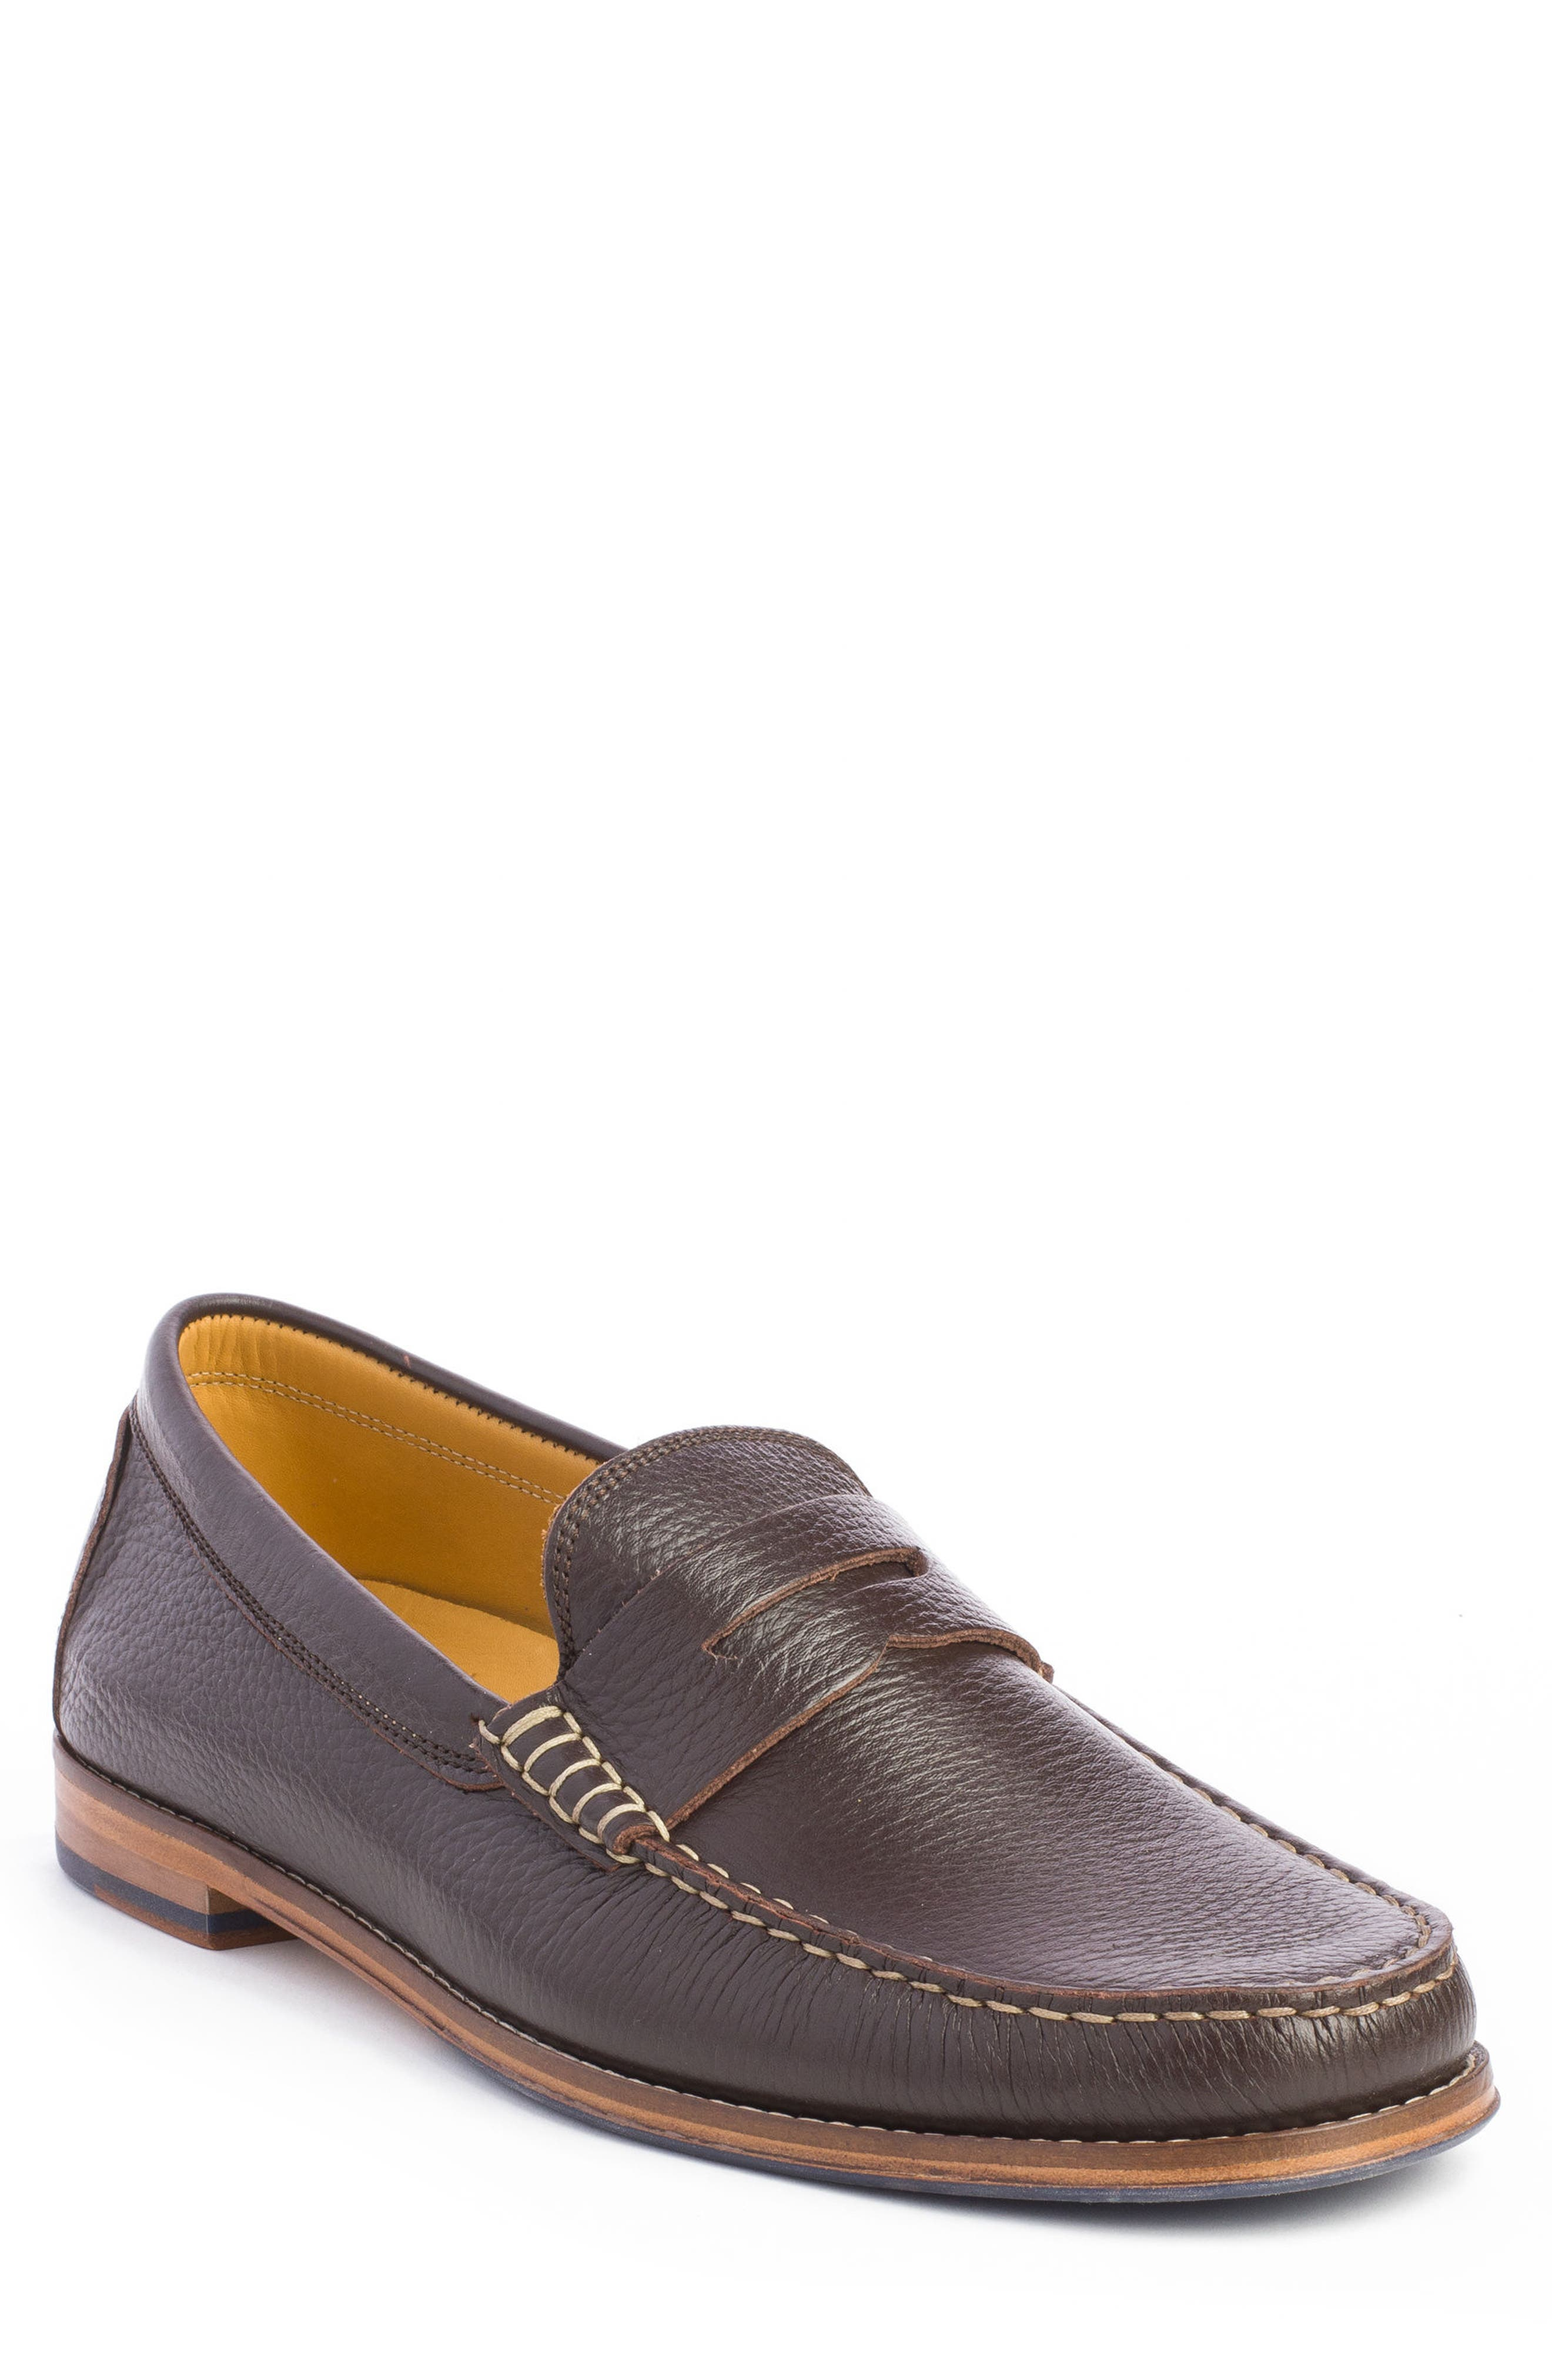 Ripleys Penny Loafer,                         Main,                         color, BROWN